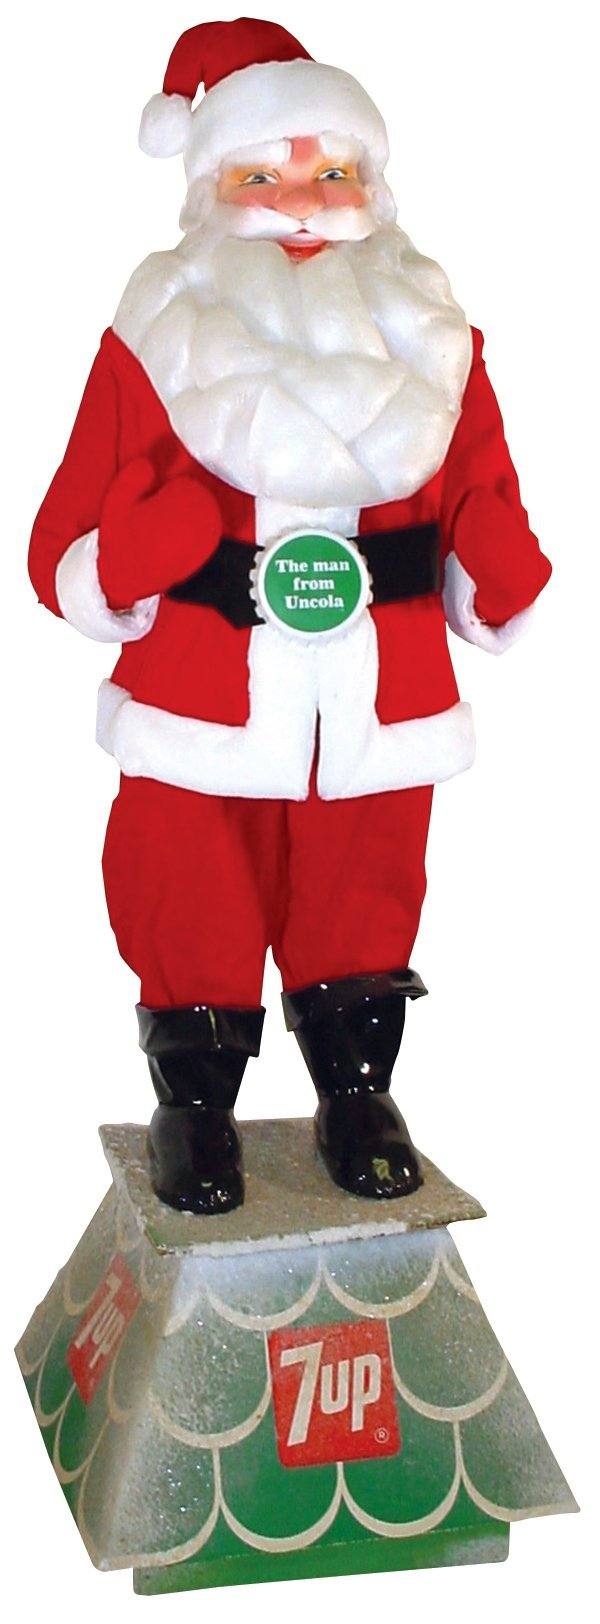 "219: 7-Up Santa, ""The Man from Uncola"", large plush San"